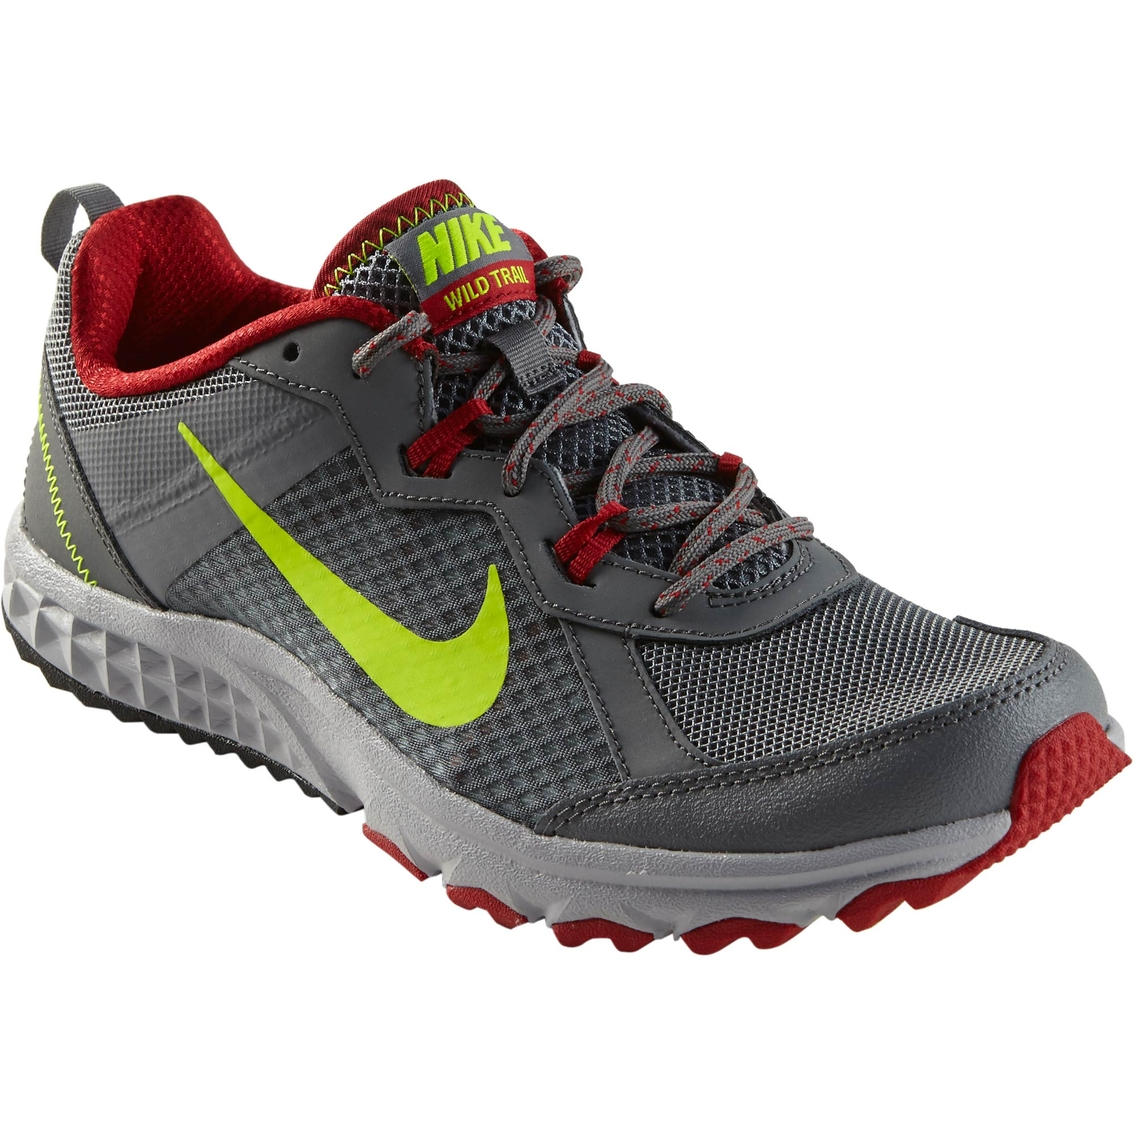 271526e657c1 Nike Trail Running Shoes   Nike × Men and Women s shoes 2018 ...